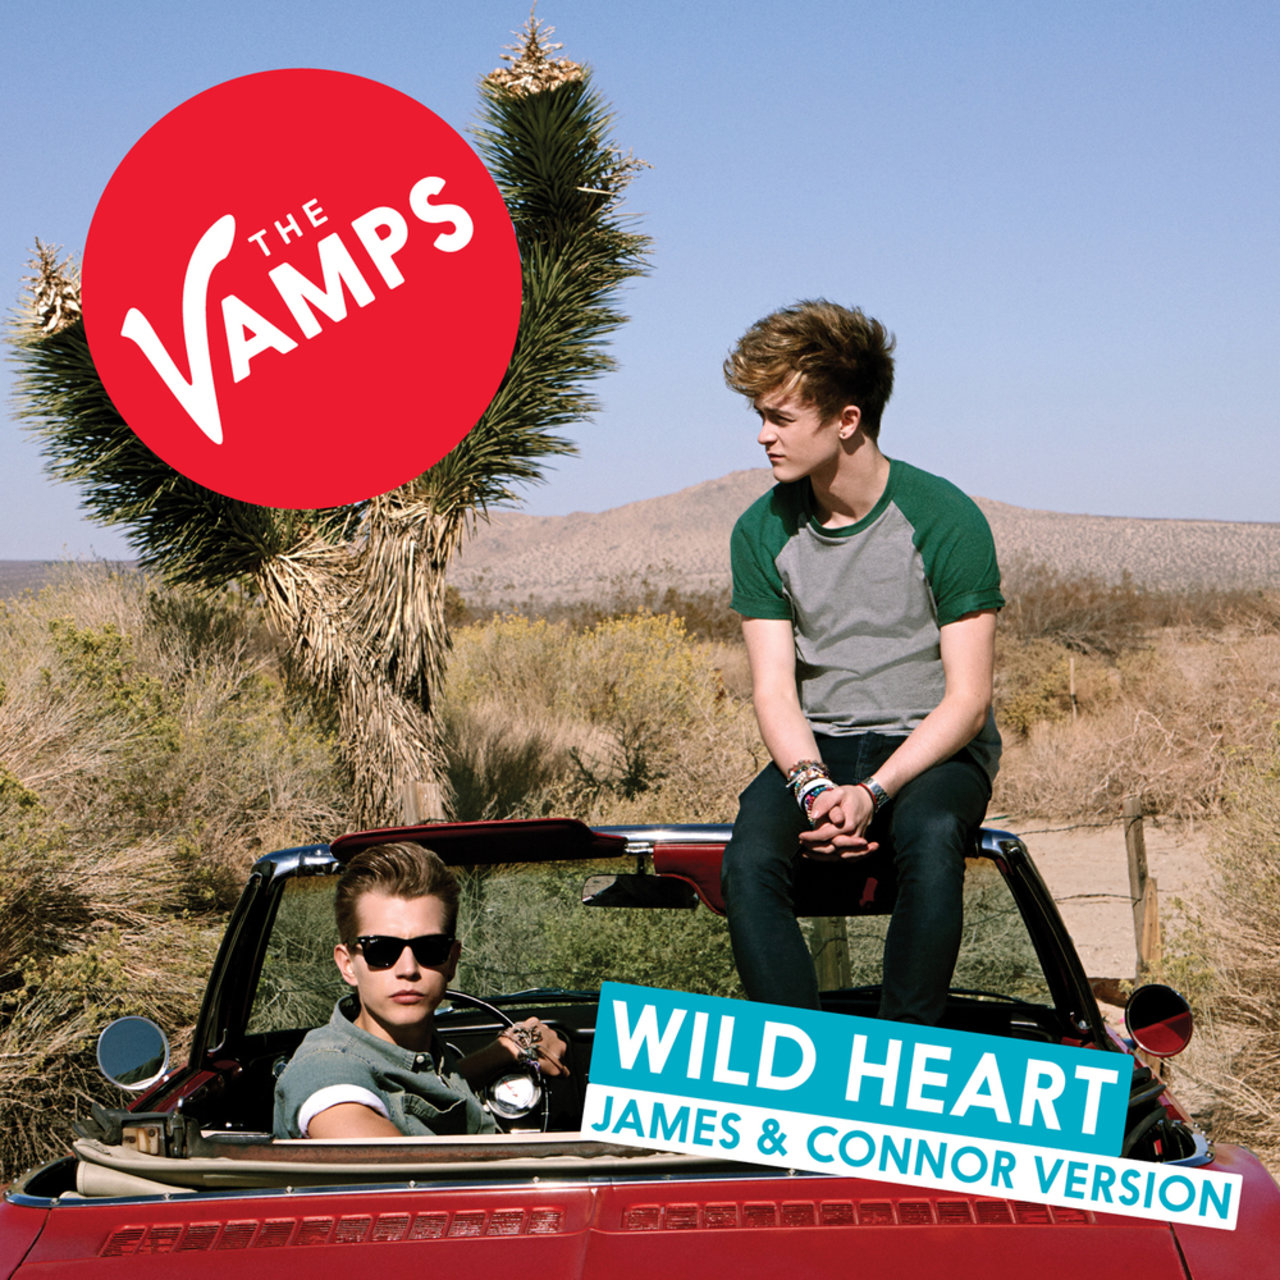 Wild Heart (James & Connor Version)